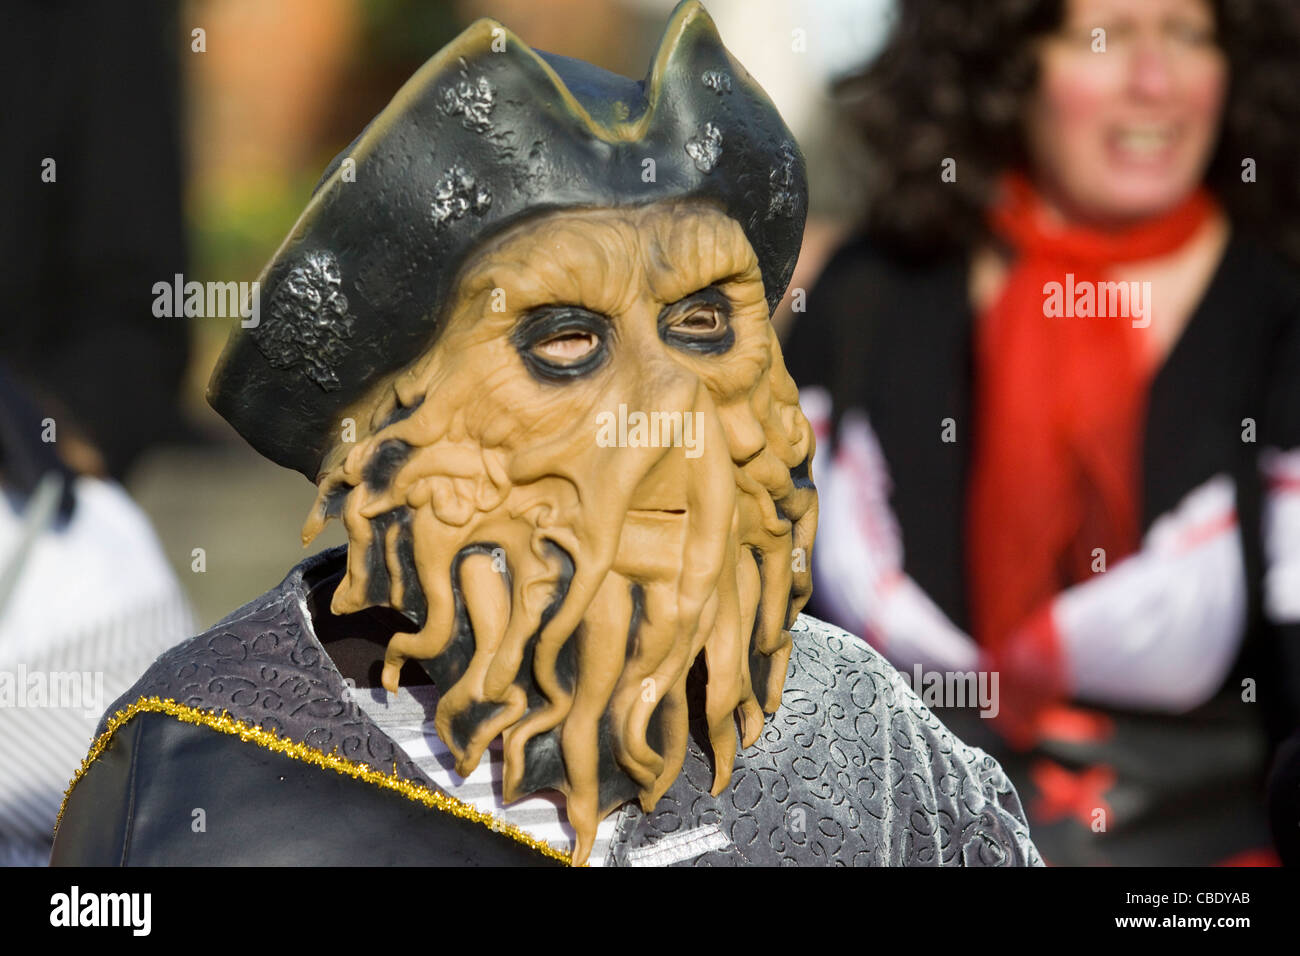 Child Dressed up as Davy Jones from the Pirates of the Caribbean ...